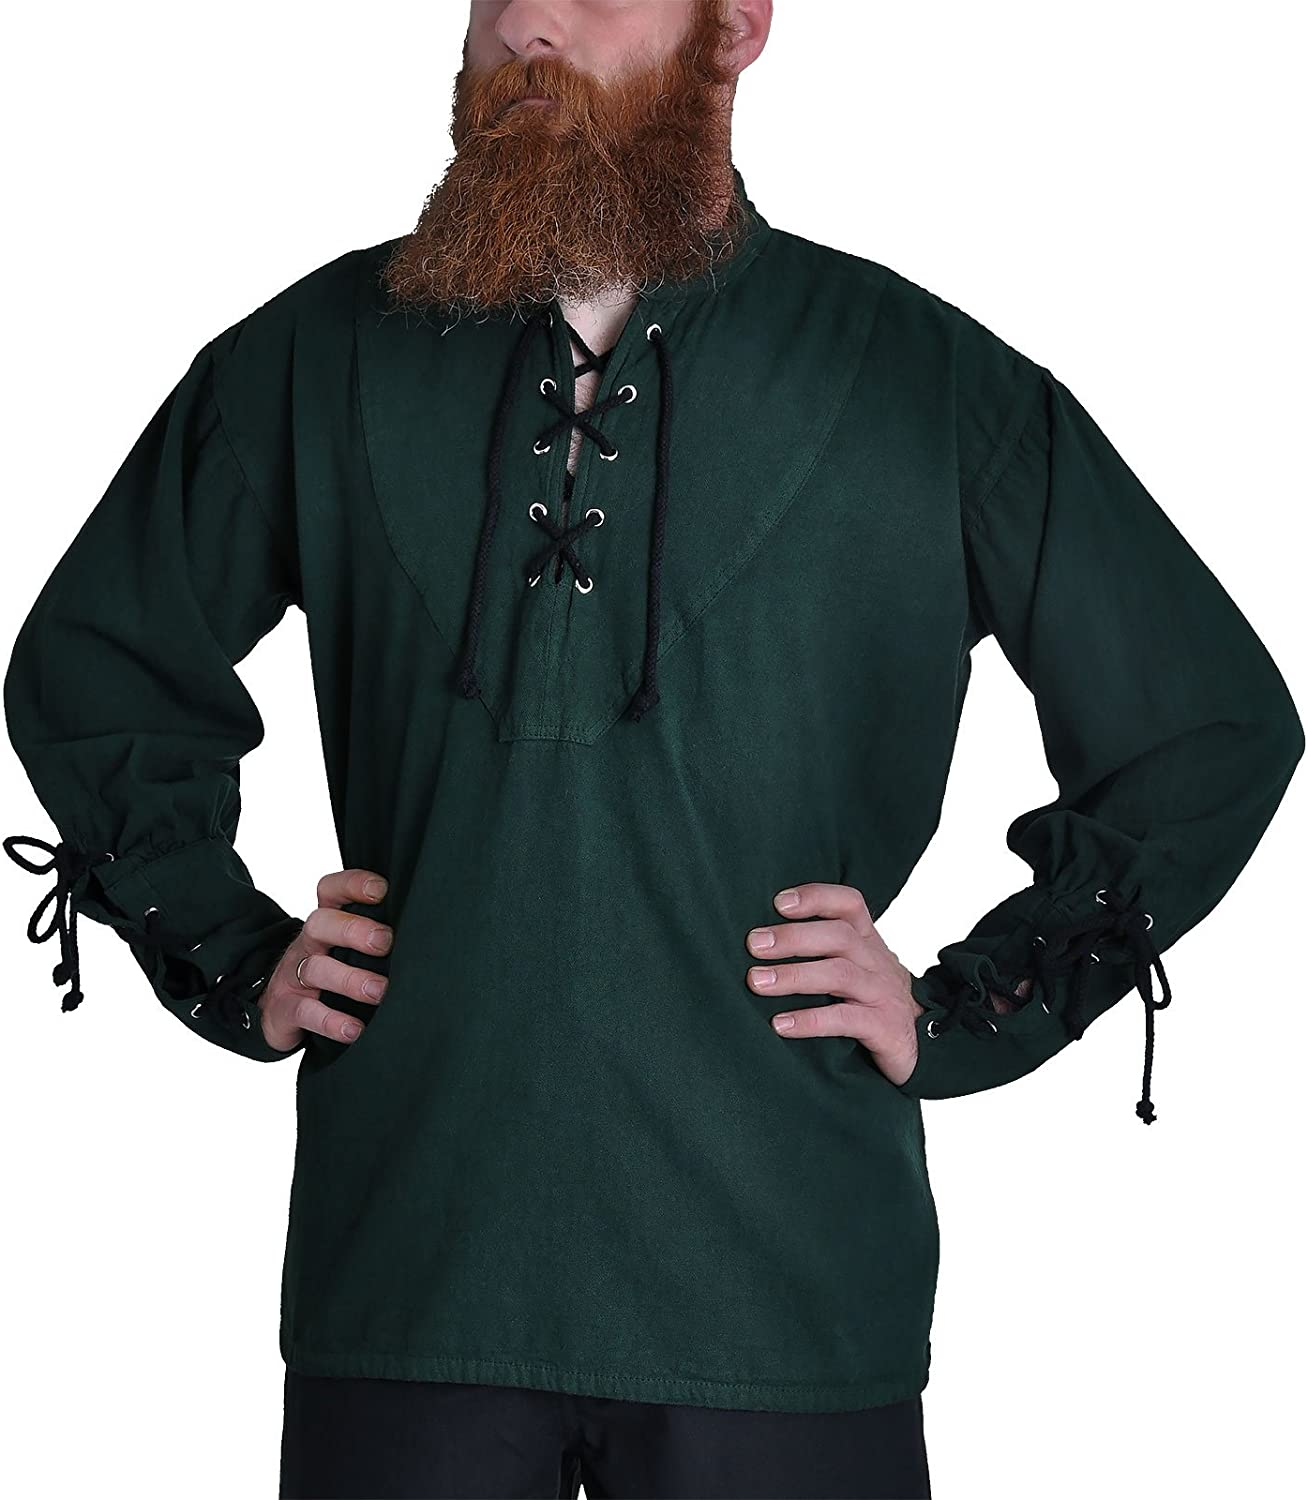 ImexModen Medieval Gothic Pirate Shirt with StandUp Collar bluee 1605